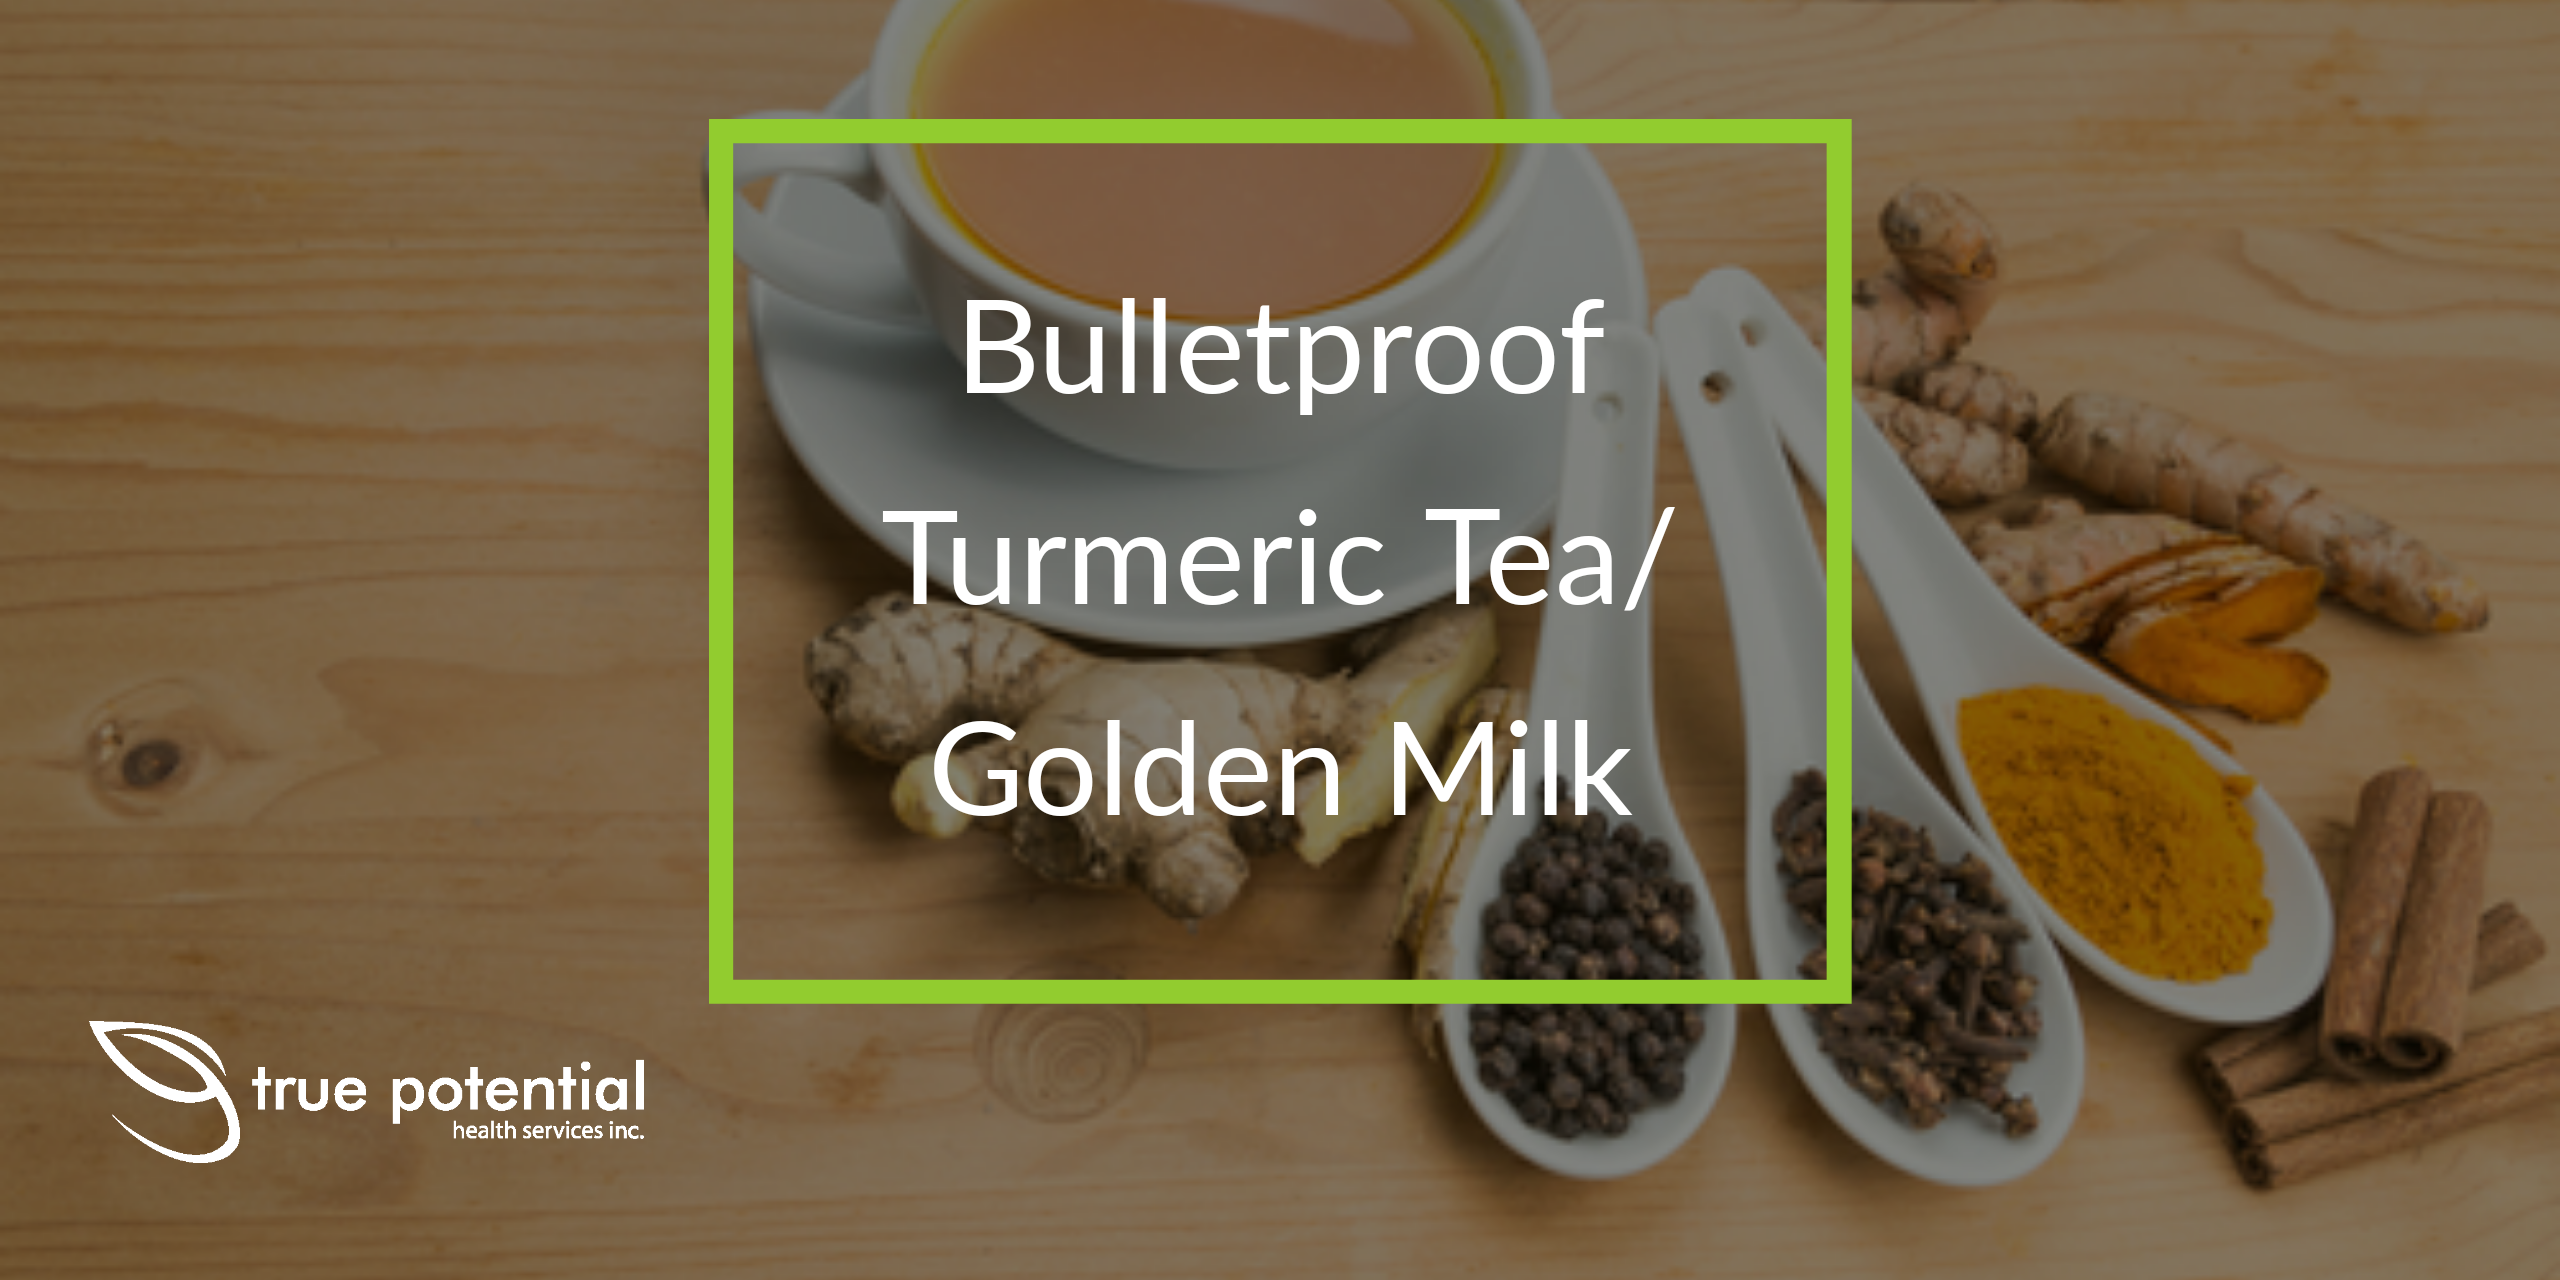 bulletproof turmeric tea/ golden milk